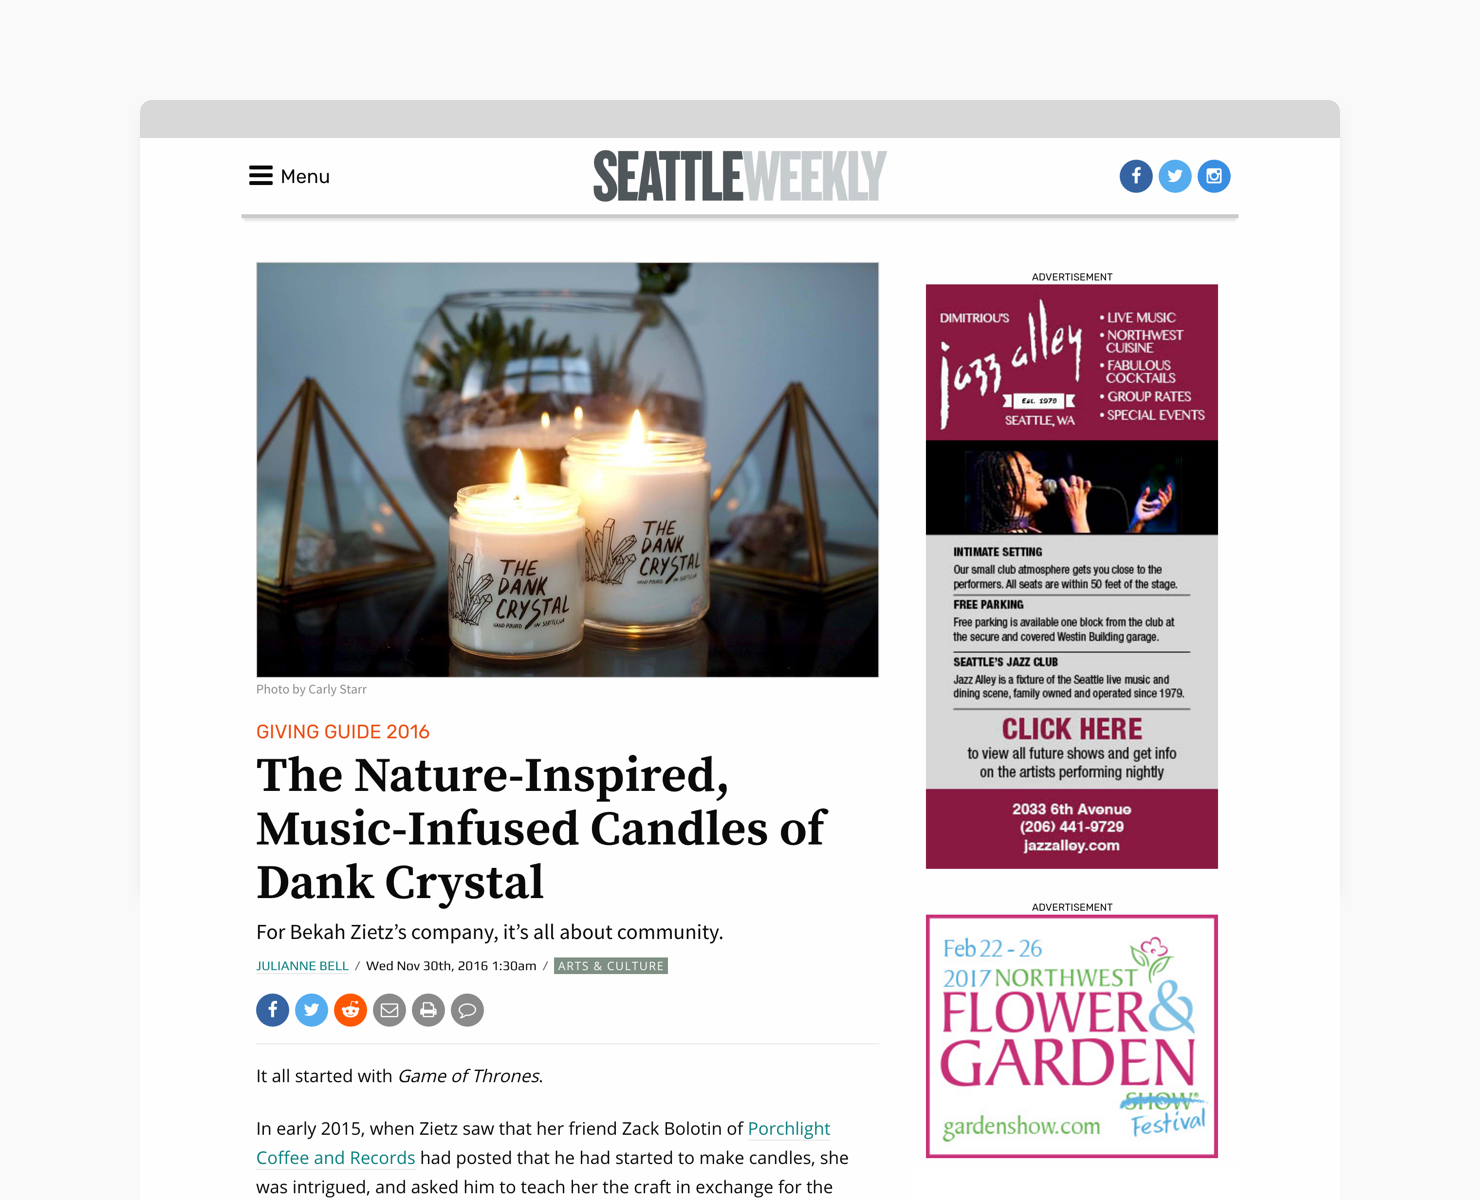 Dank Crystal x Seattle Weekly